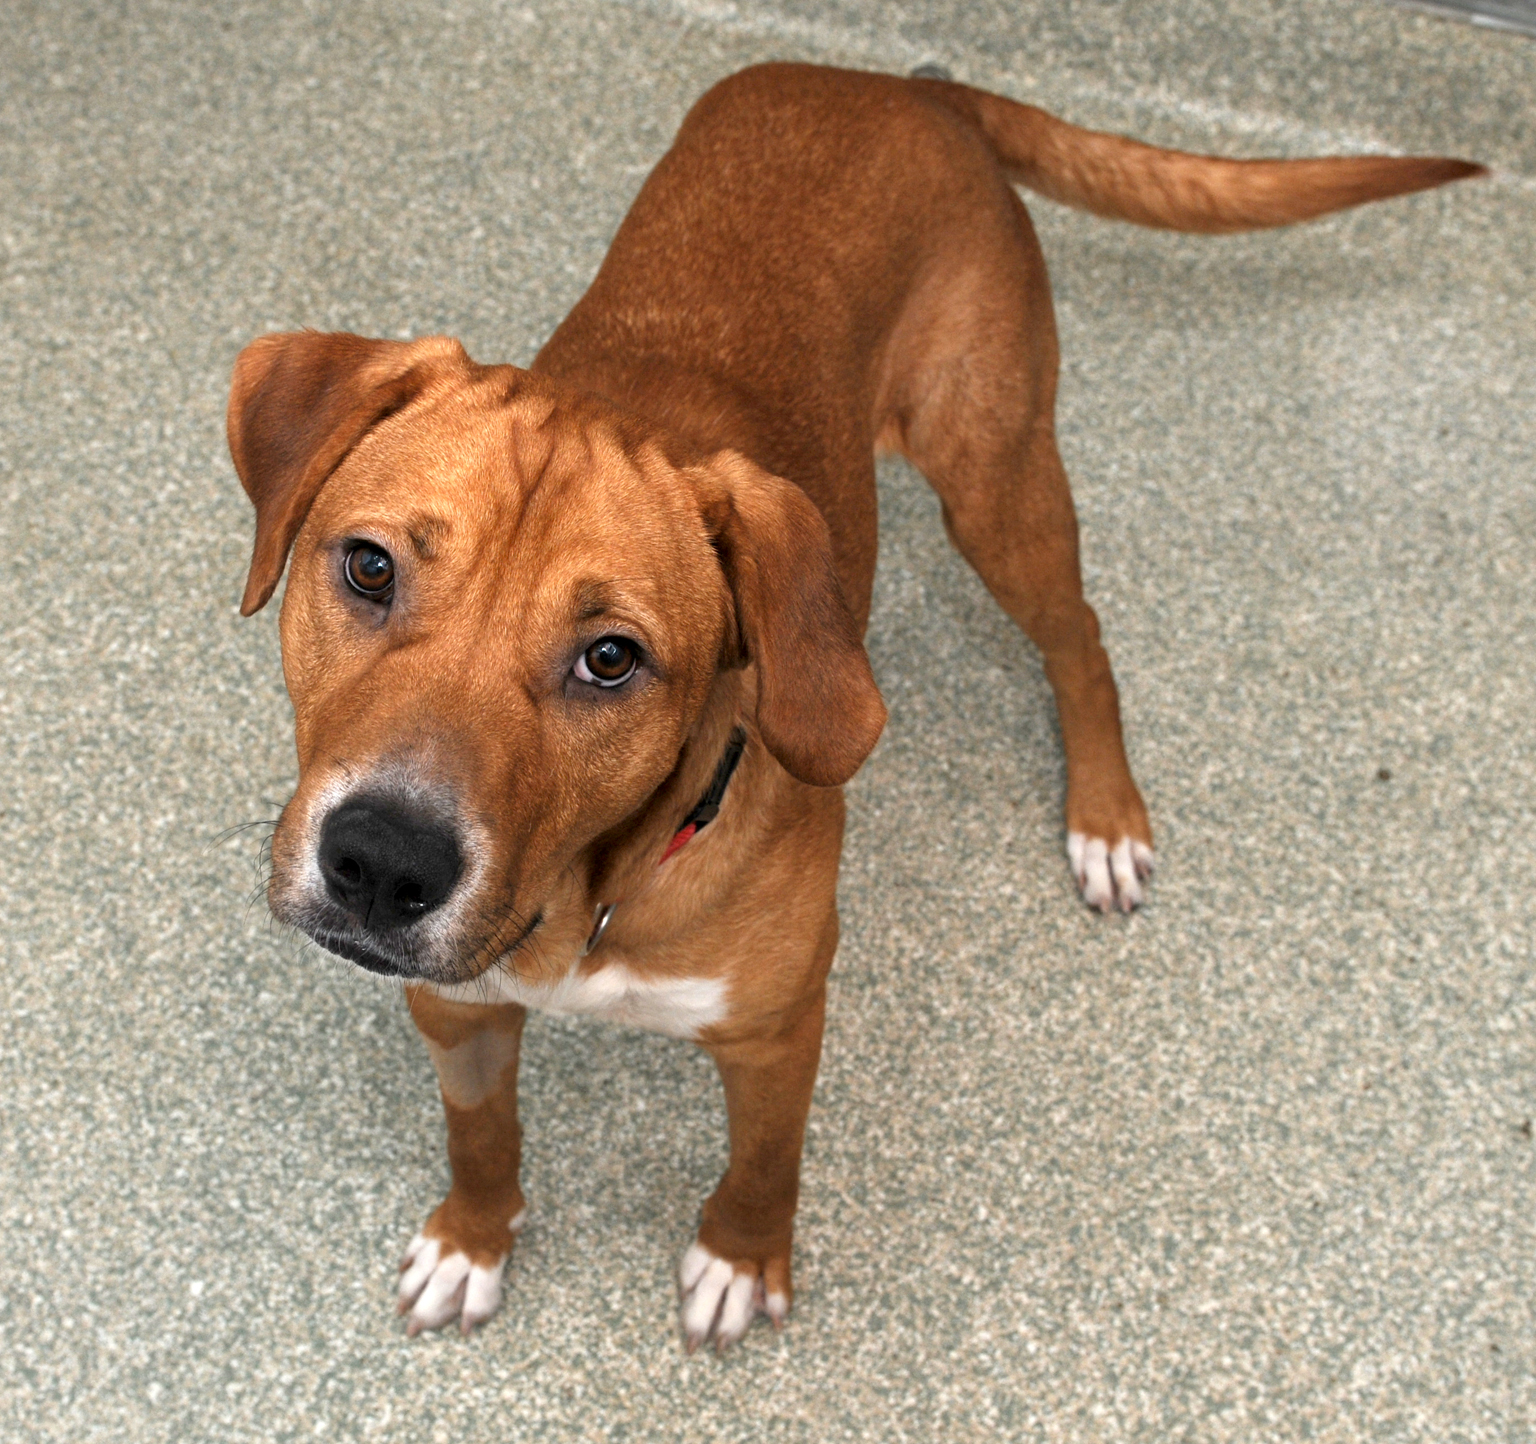 Meet Amelio:  This Lab mix is as friendly as they come